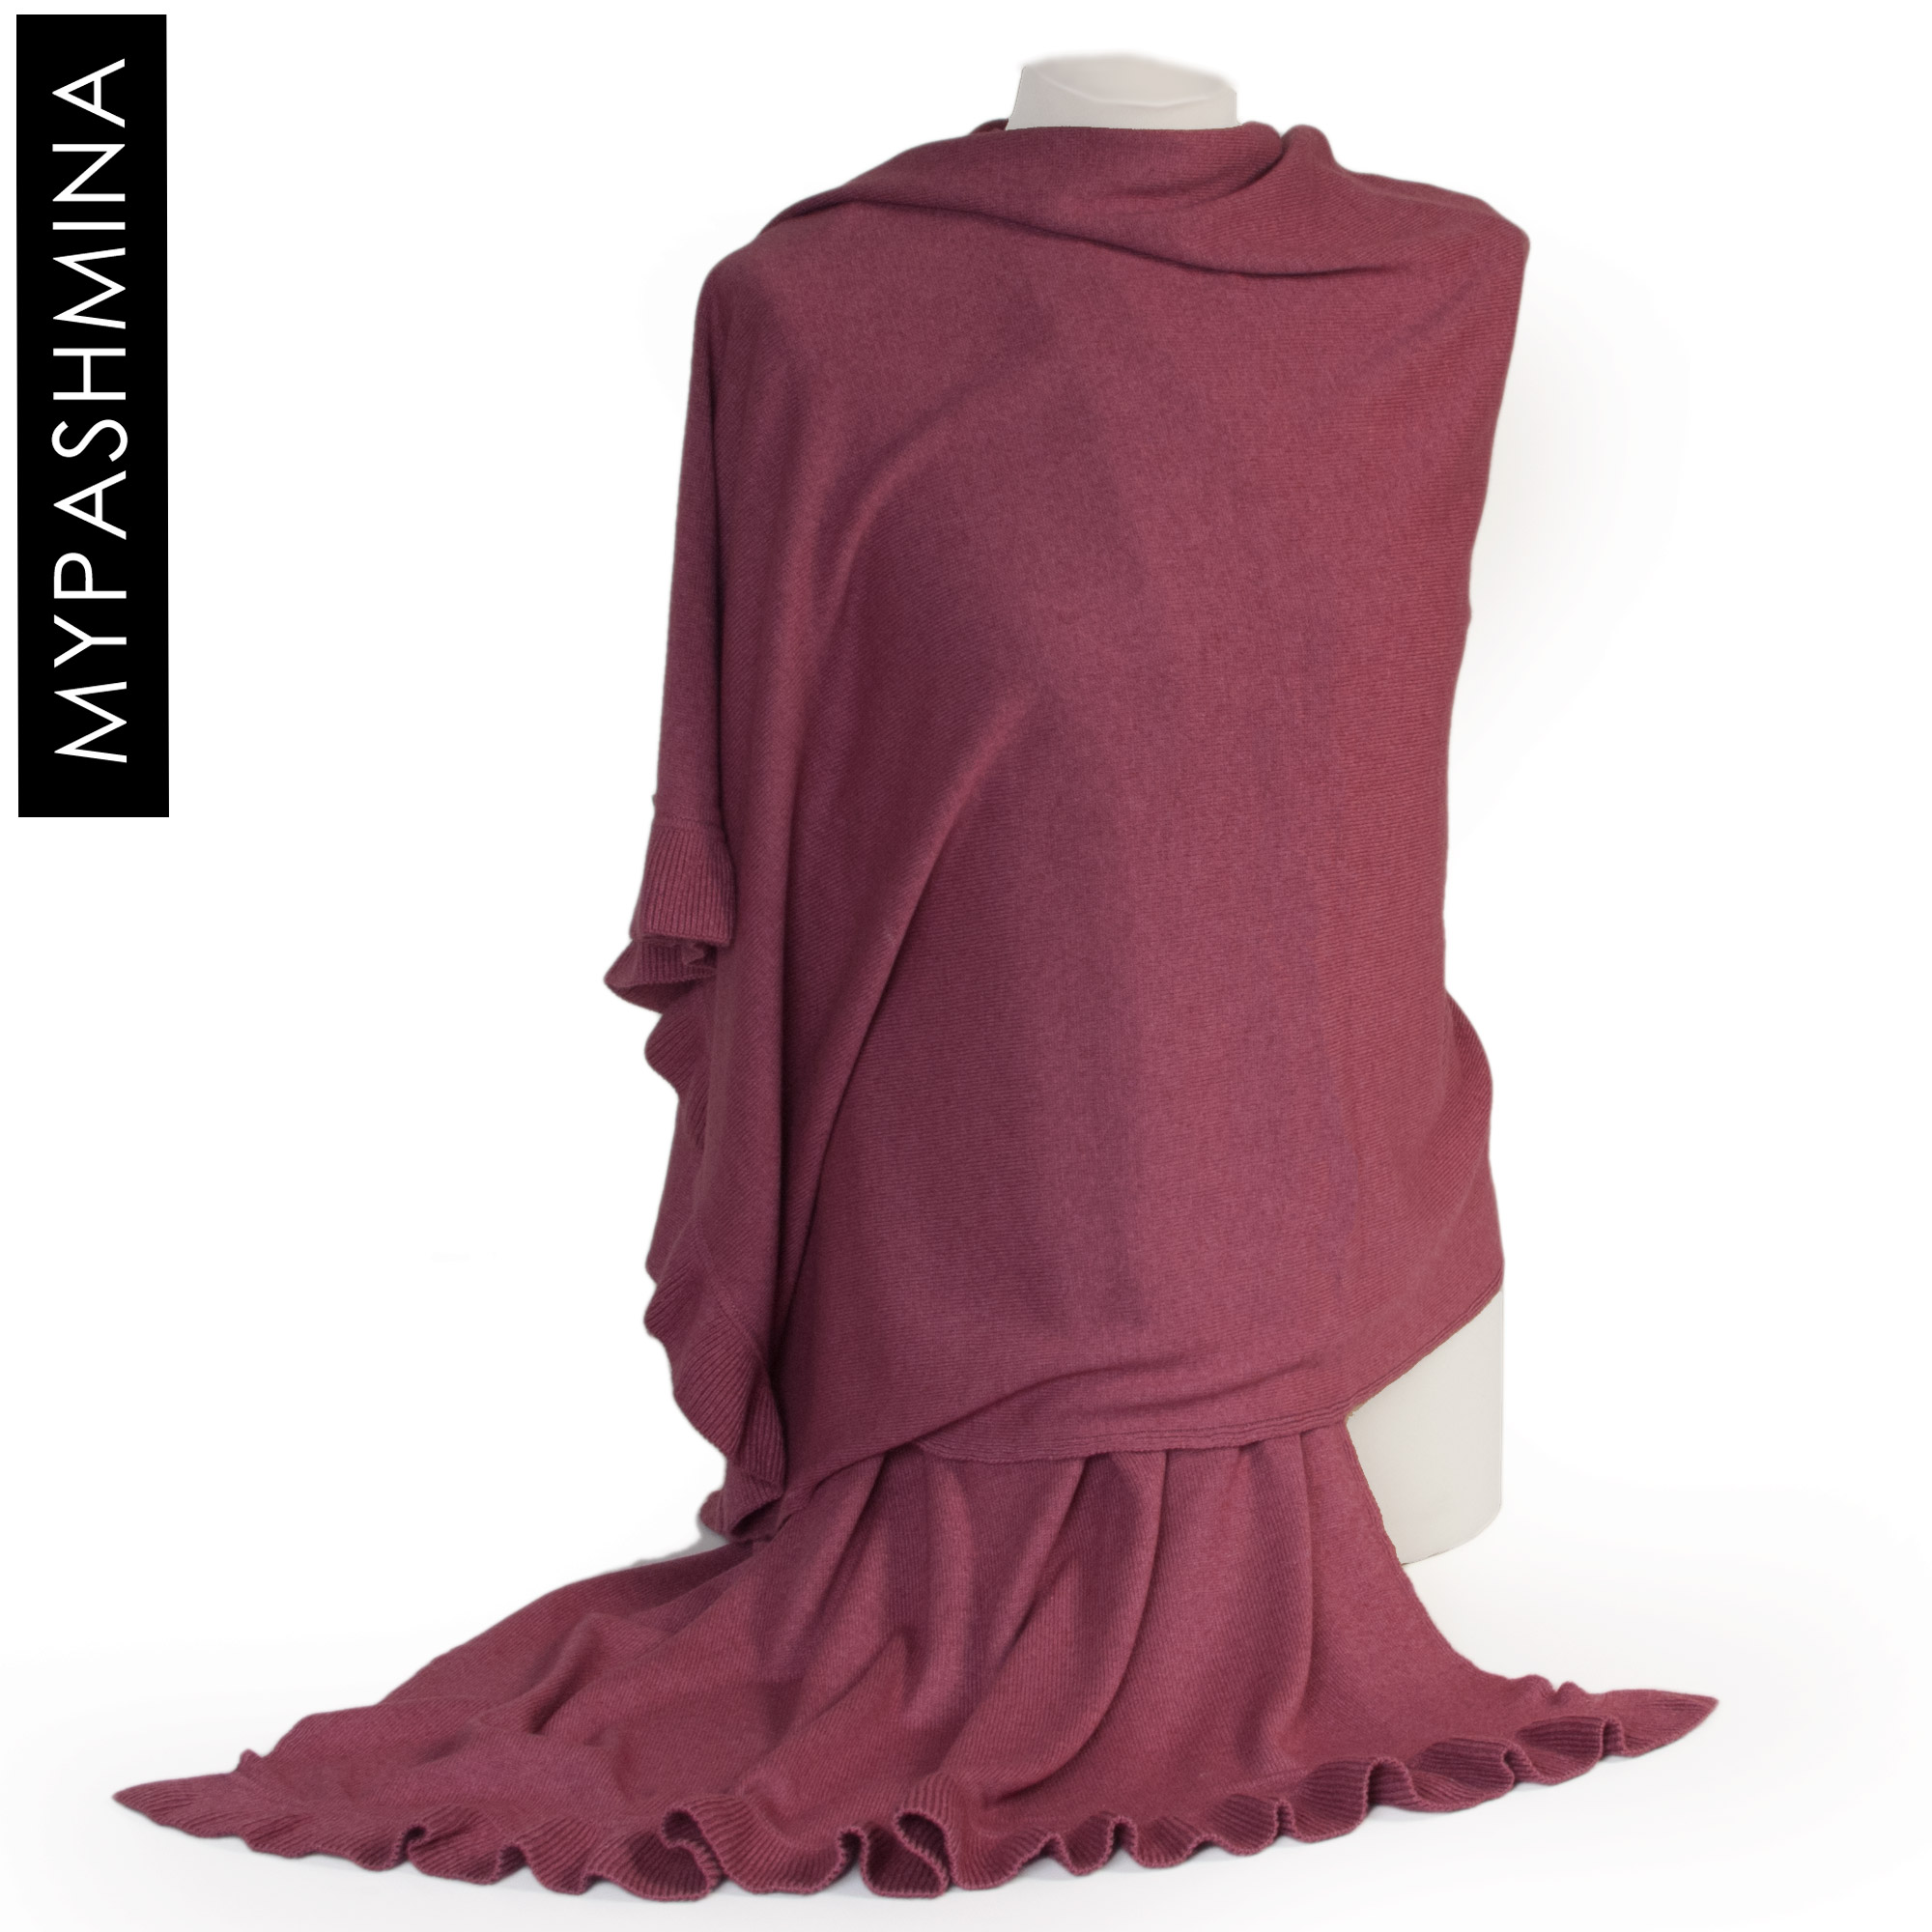 Frilled Edge Shawl - 50% Cashmere / 50% Silk - 70x200cm - Dry Rose mp127